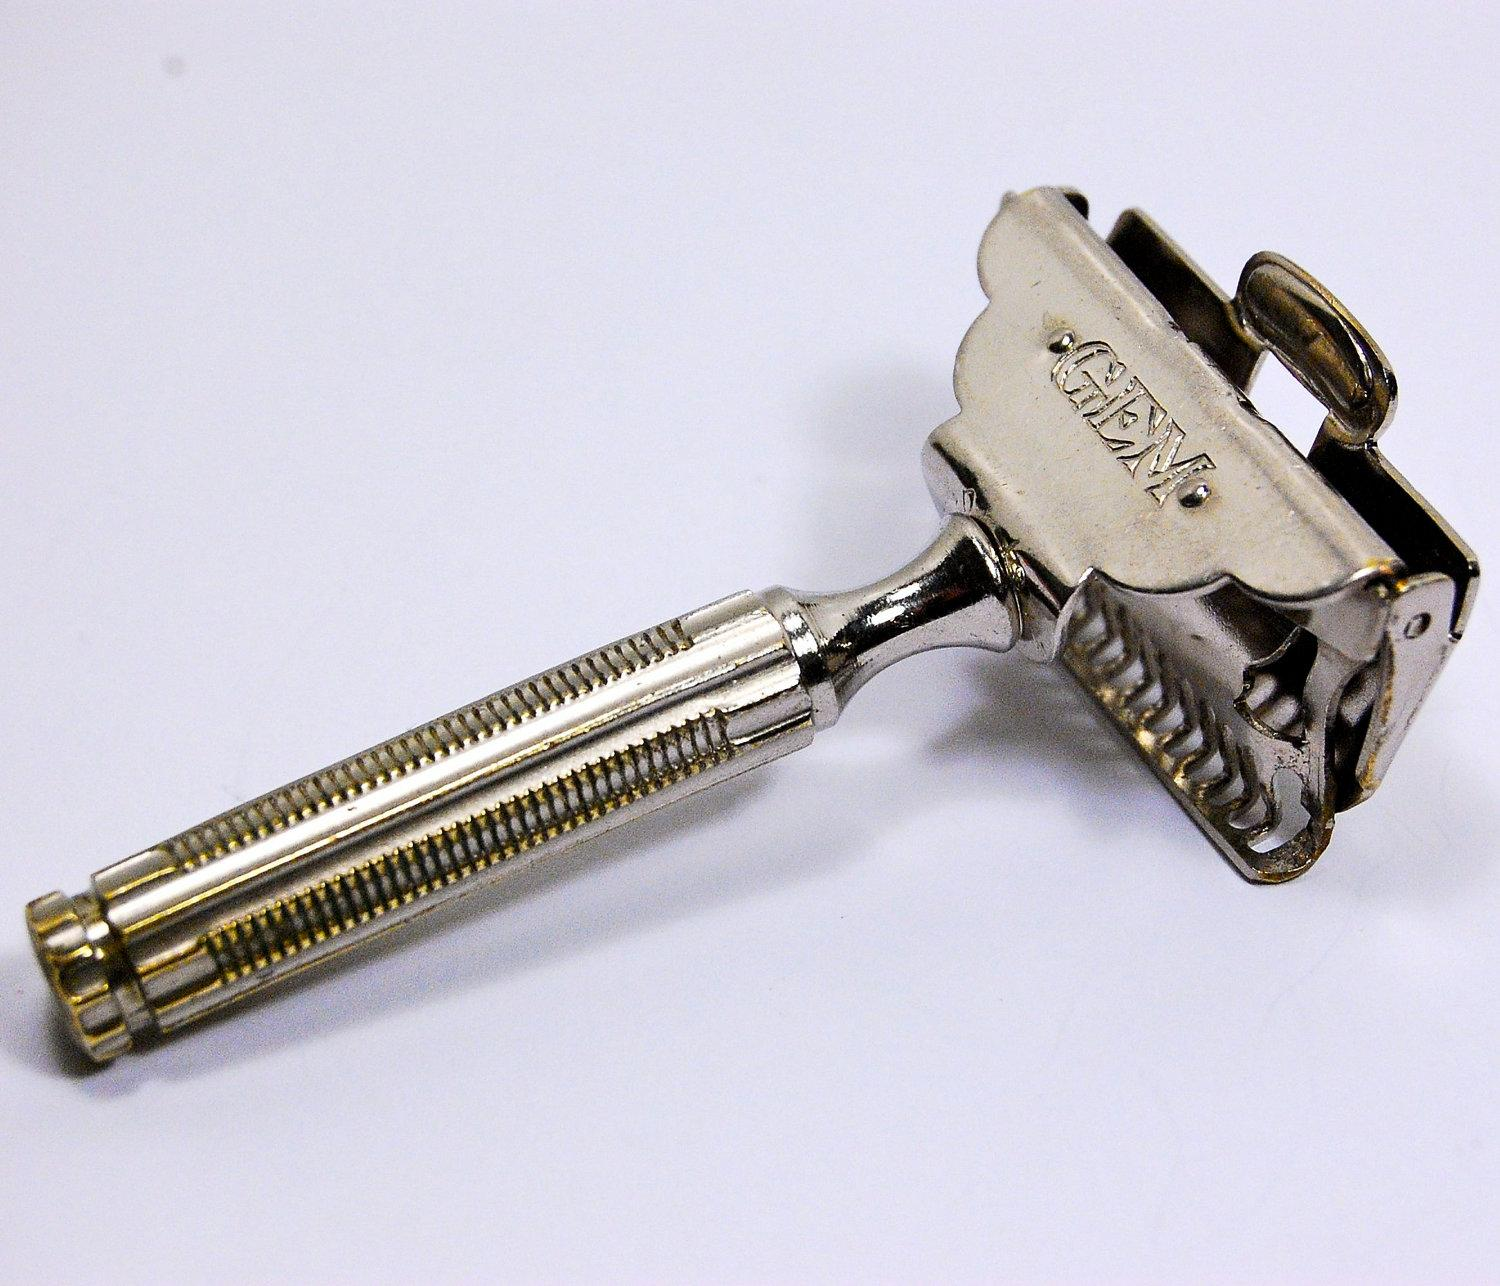 dating gem razors Gem micromatic 'clog pruf' single edge razor lot of two chrome finish hard to date these razors, but these are probably 30s-40s era this is a classic design.